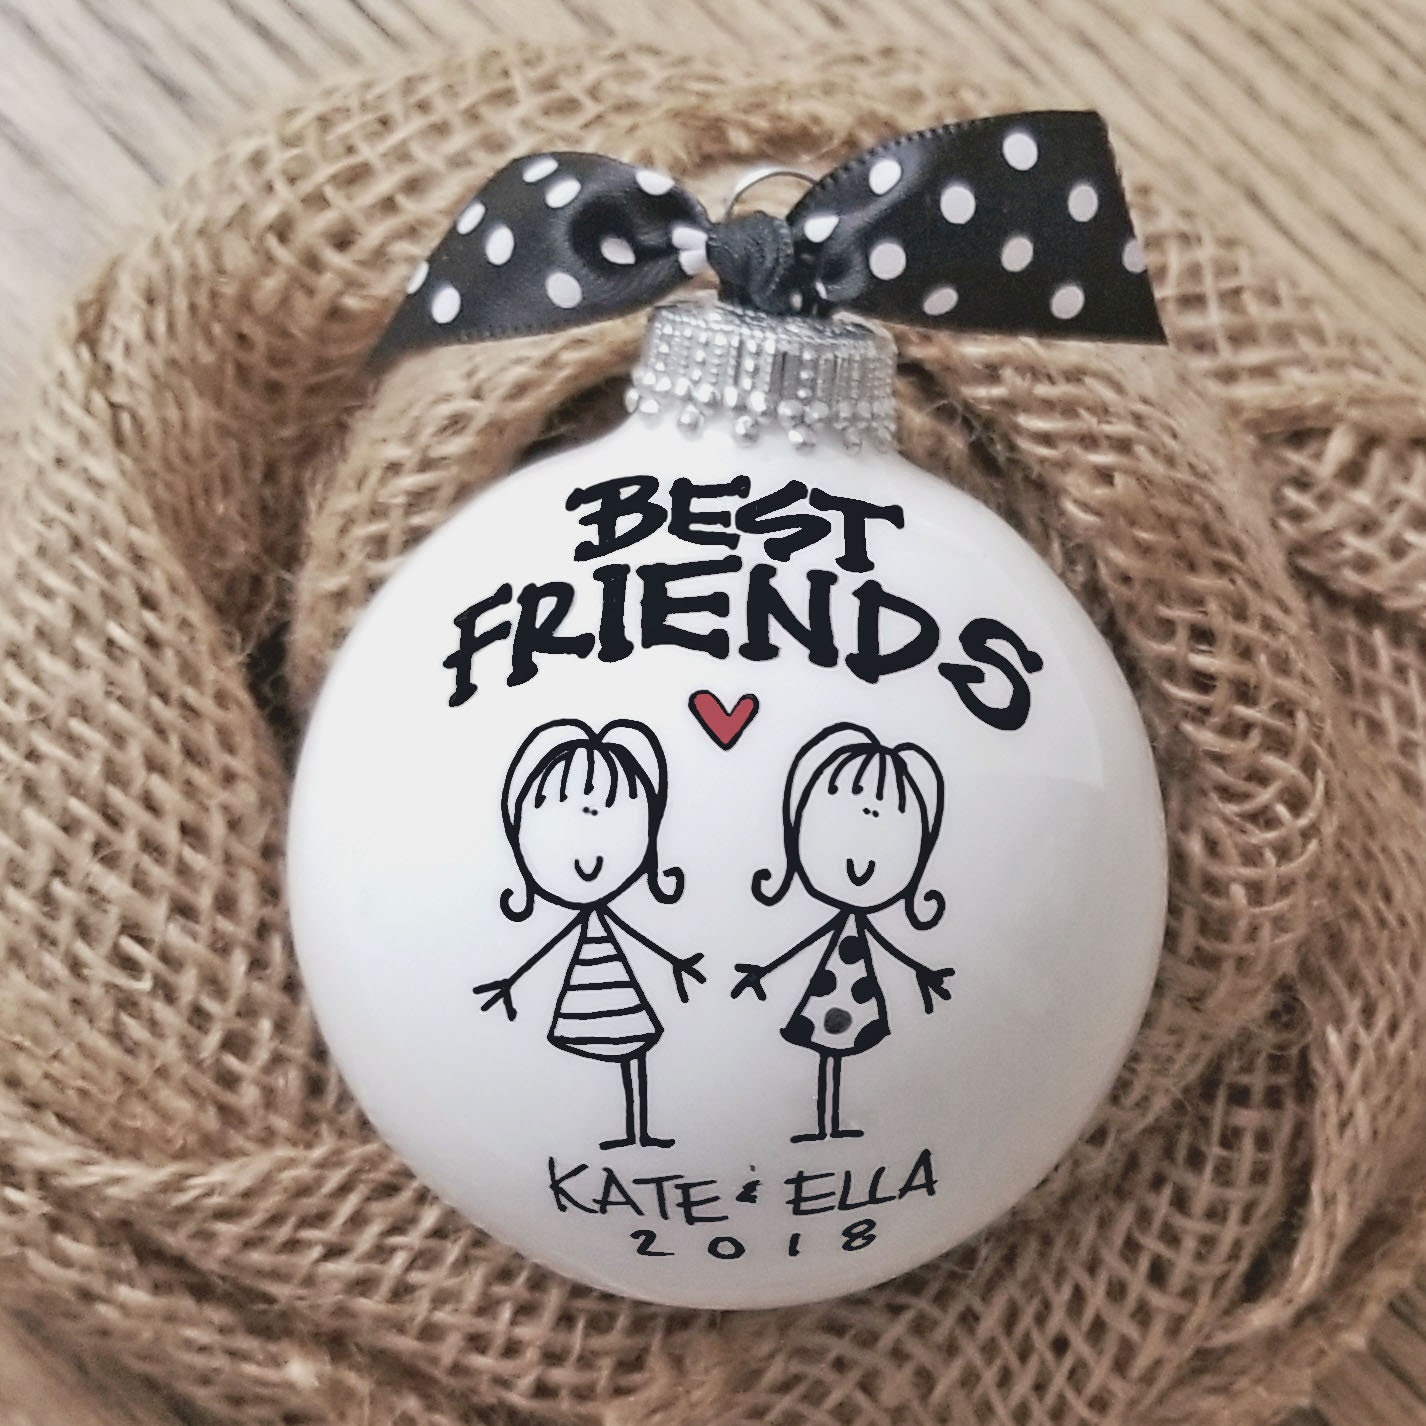 best friend ornament personalized friend ornament girlfriend gift personalized ornament bff ornament best friend christmas